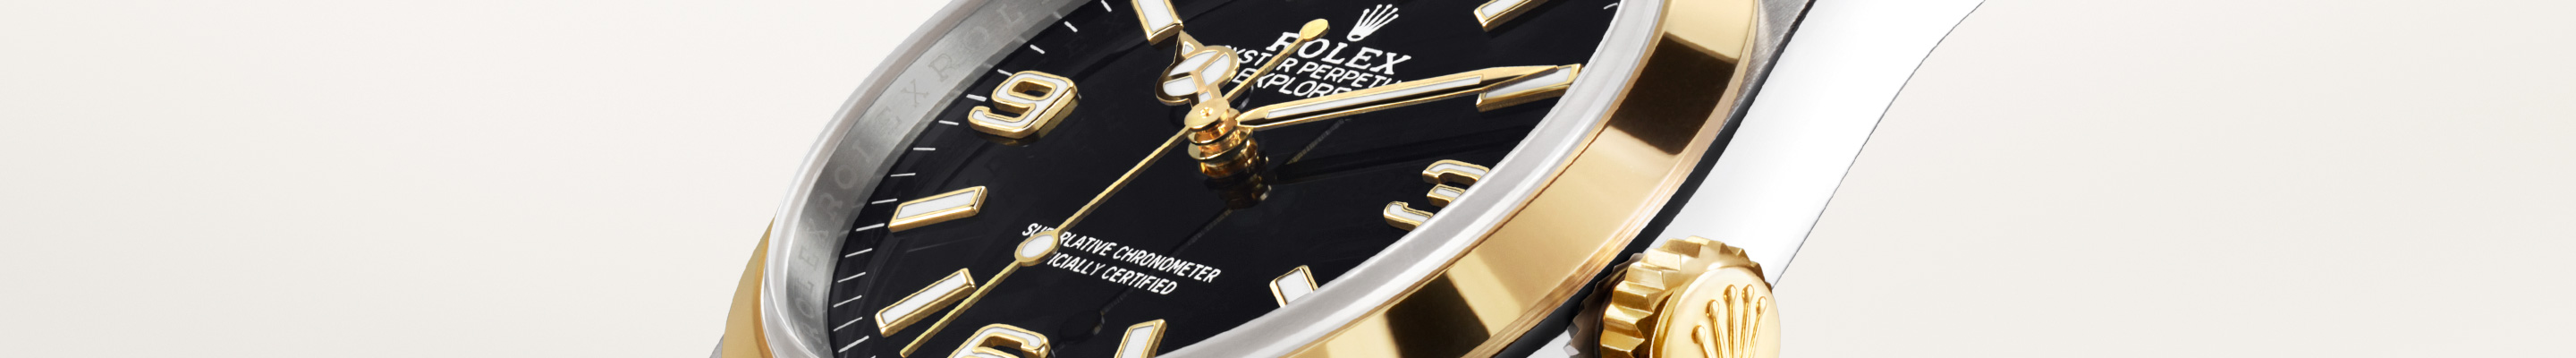 2021 Rolex Watches at La Différence